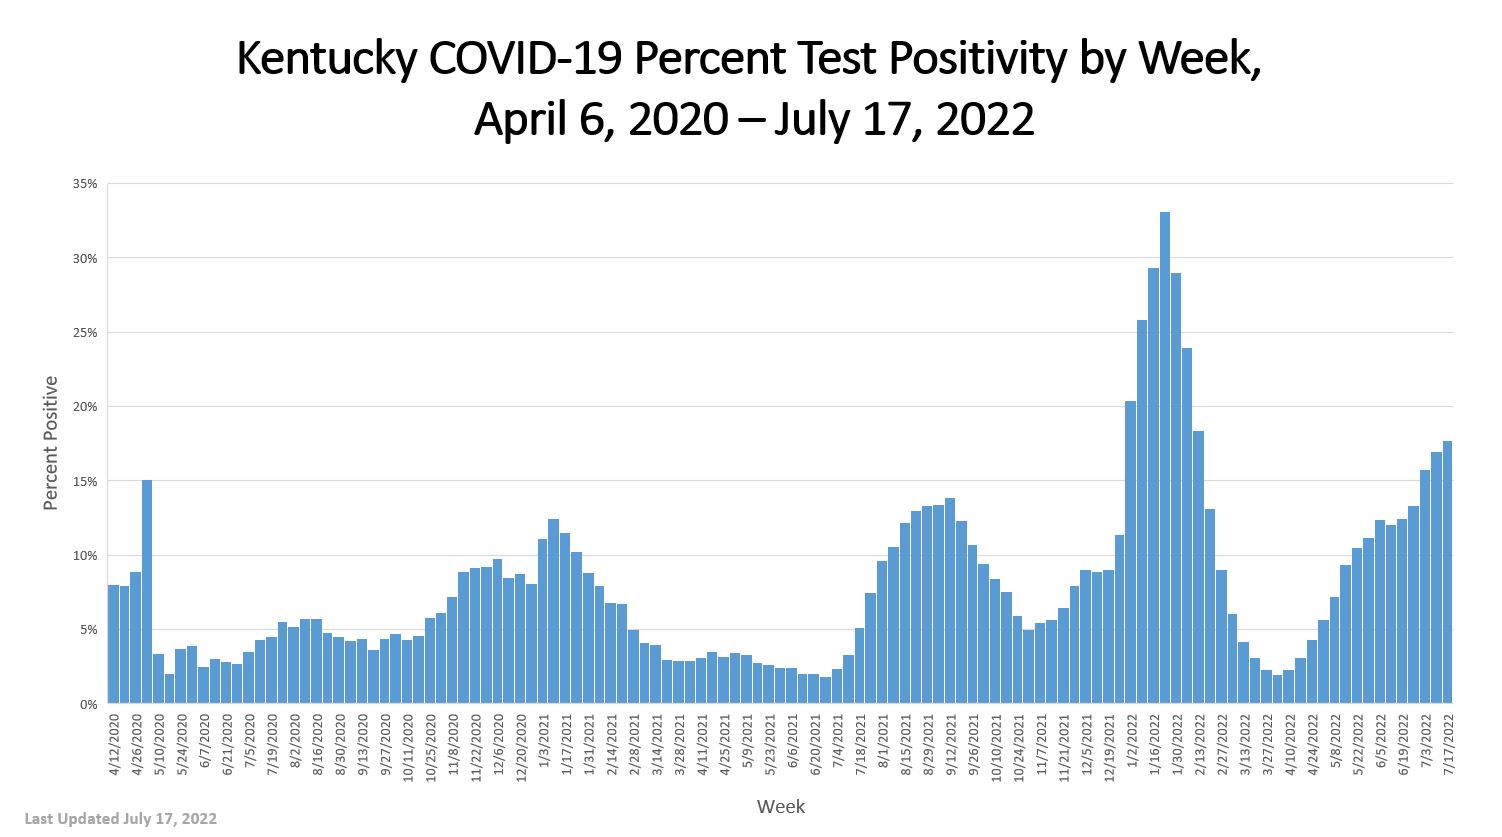 Kentucky COVID-19 Percent Test Positivity by Week - full details in pdf below images